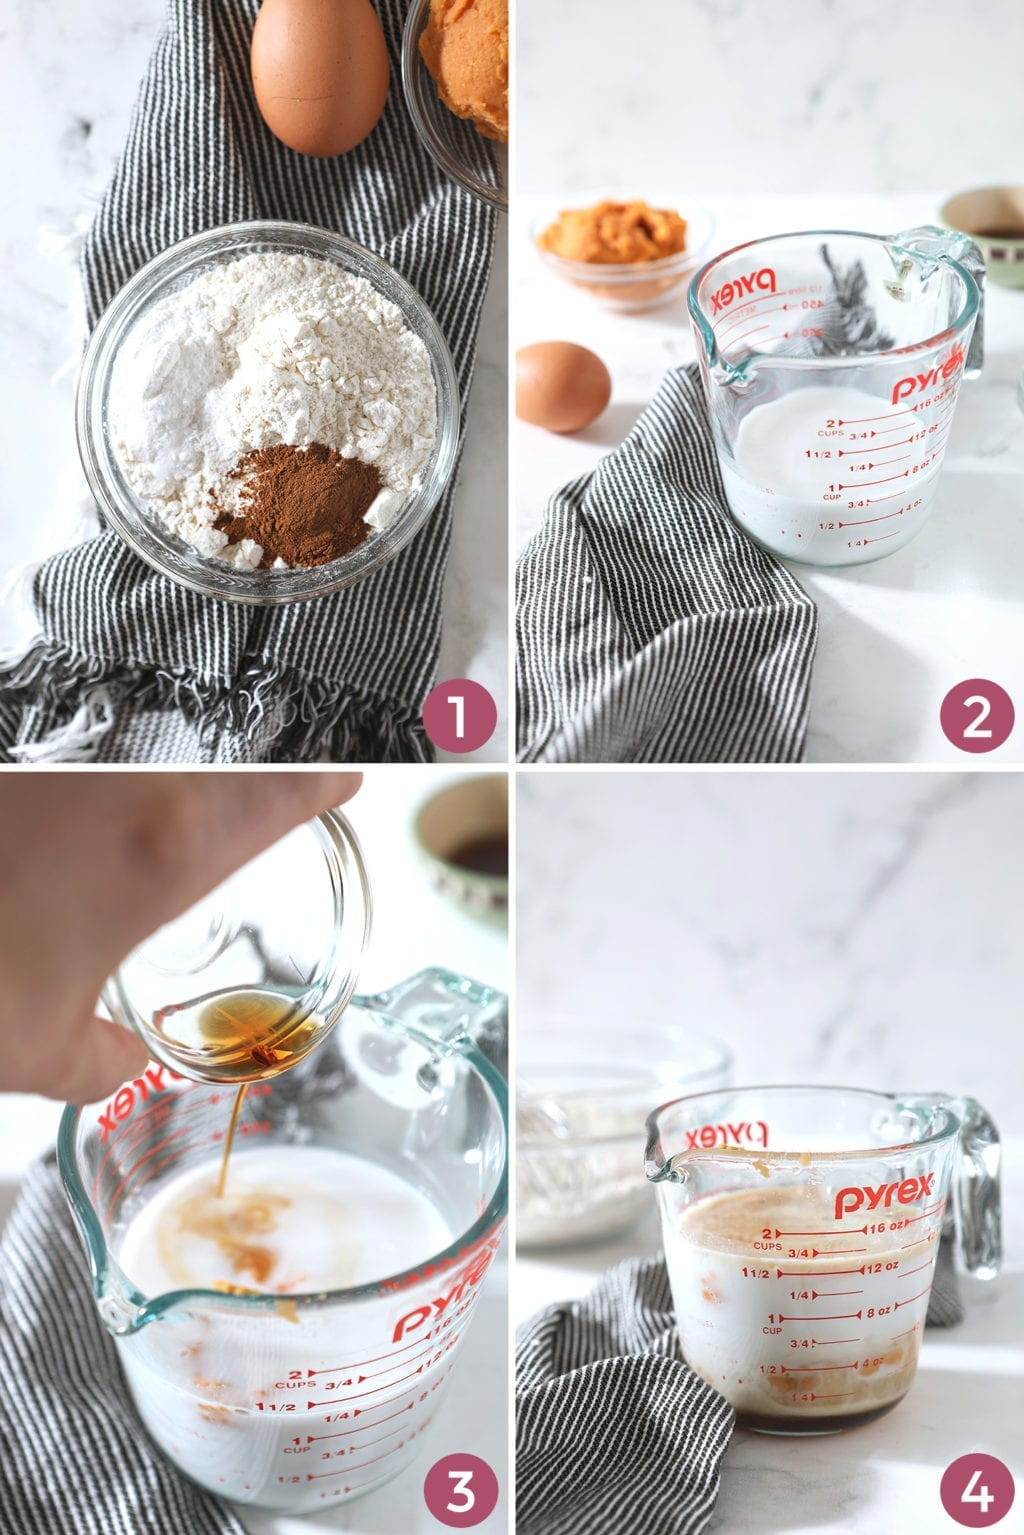 A collage of four photos shows how to combine the ingredients to make the pancake batter